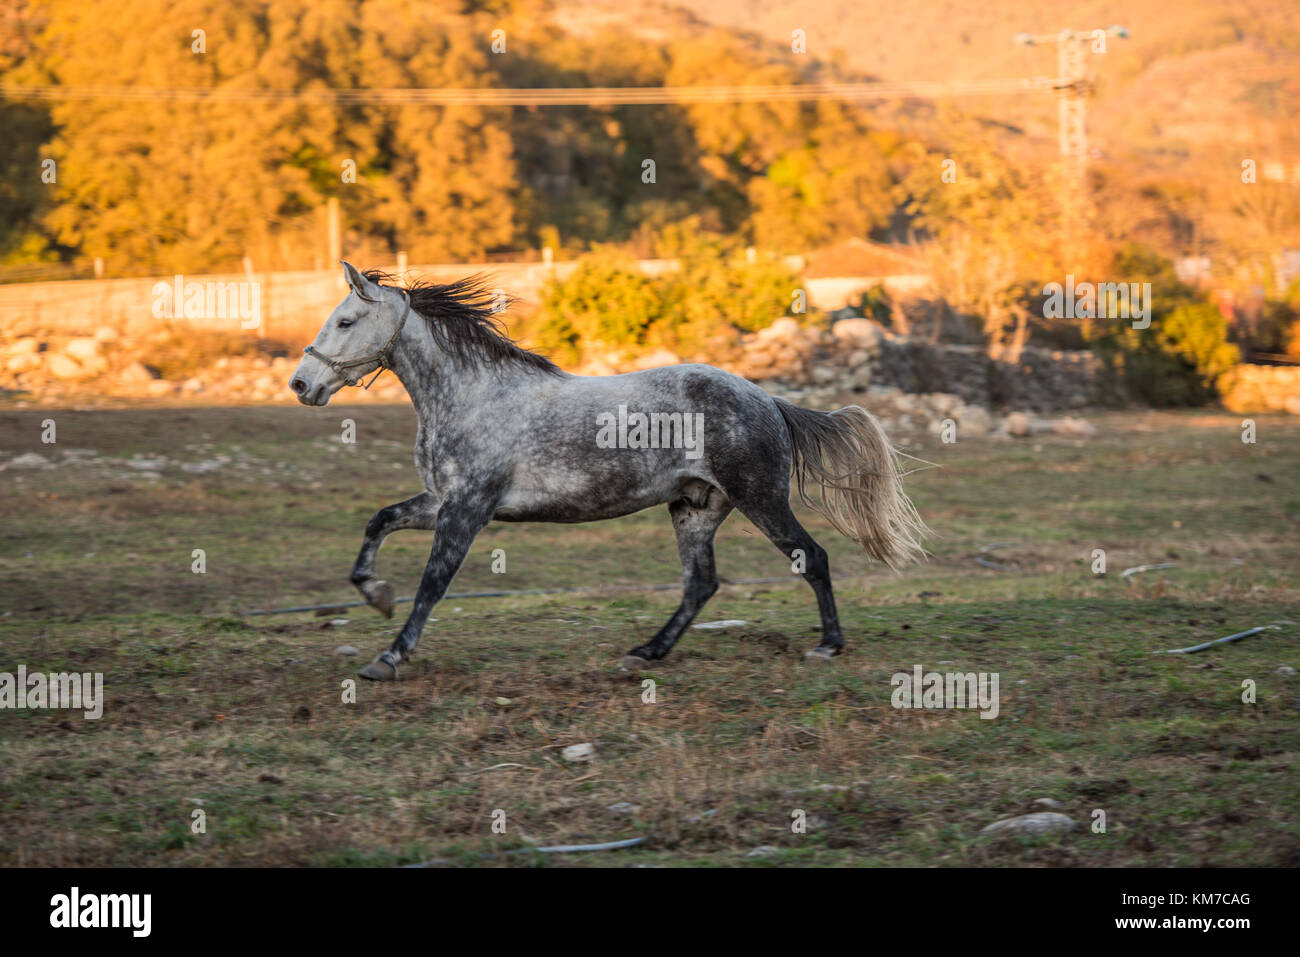 A white and black horse runs free on a ranch in Jerte, Extremadura, Spain. - Stock Image